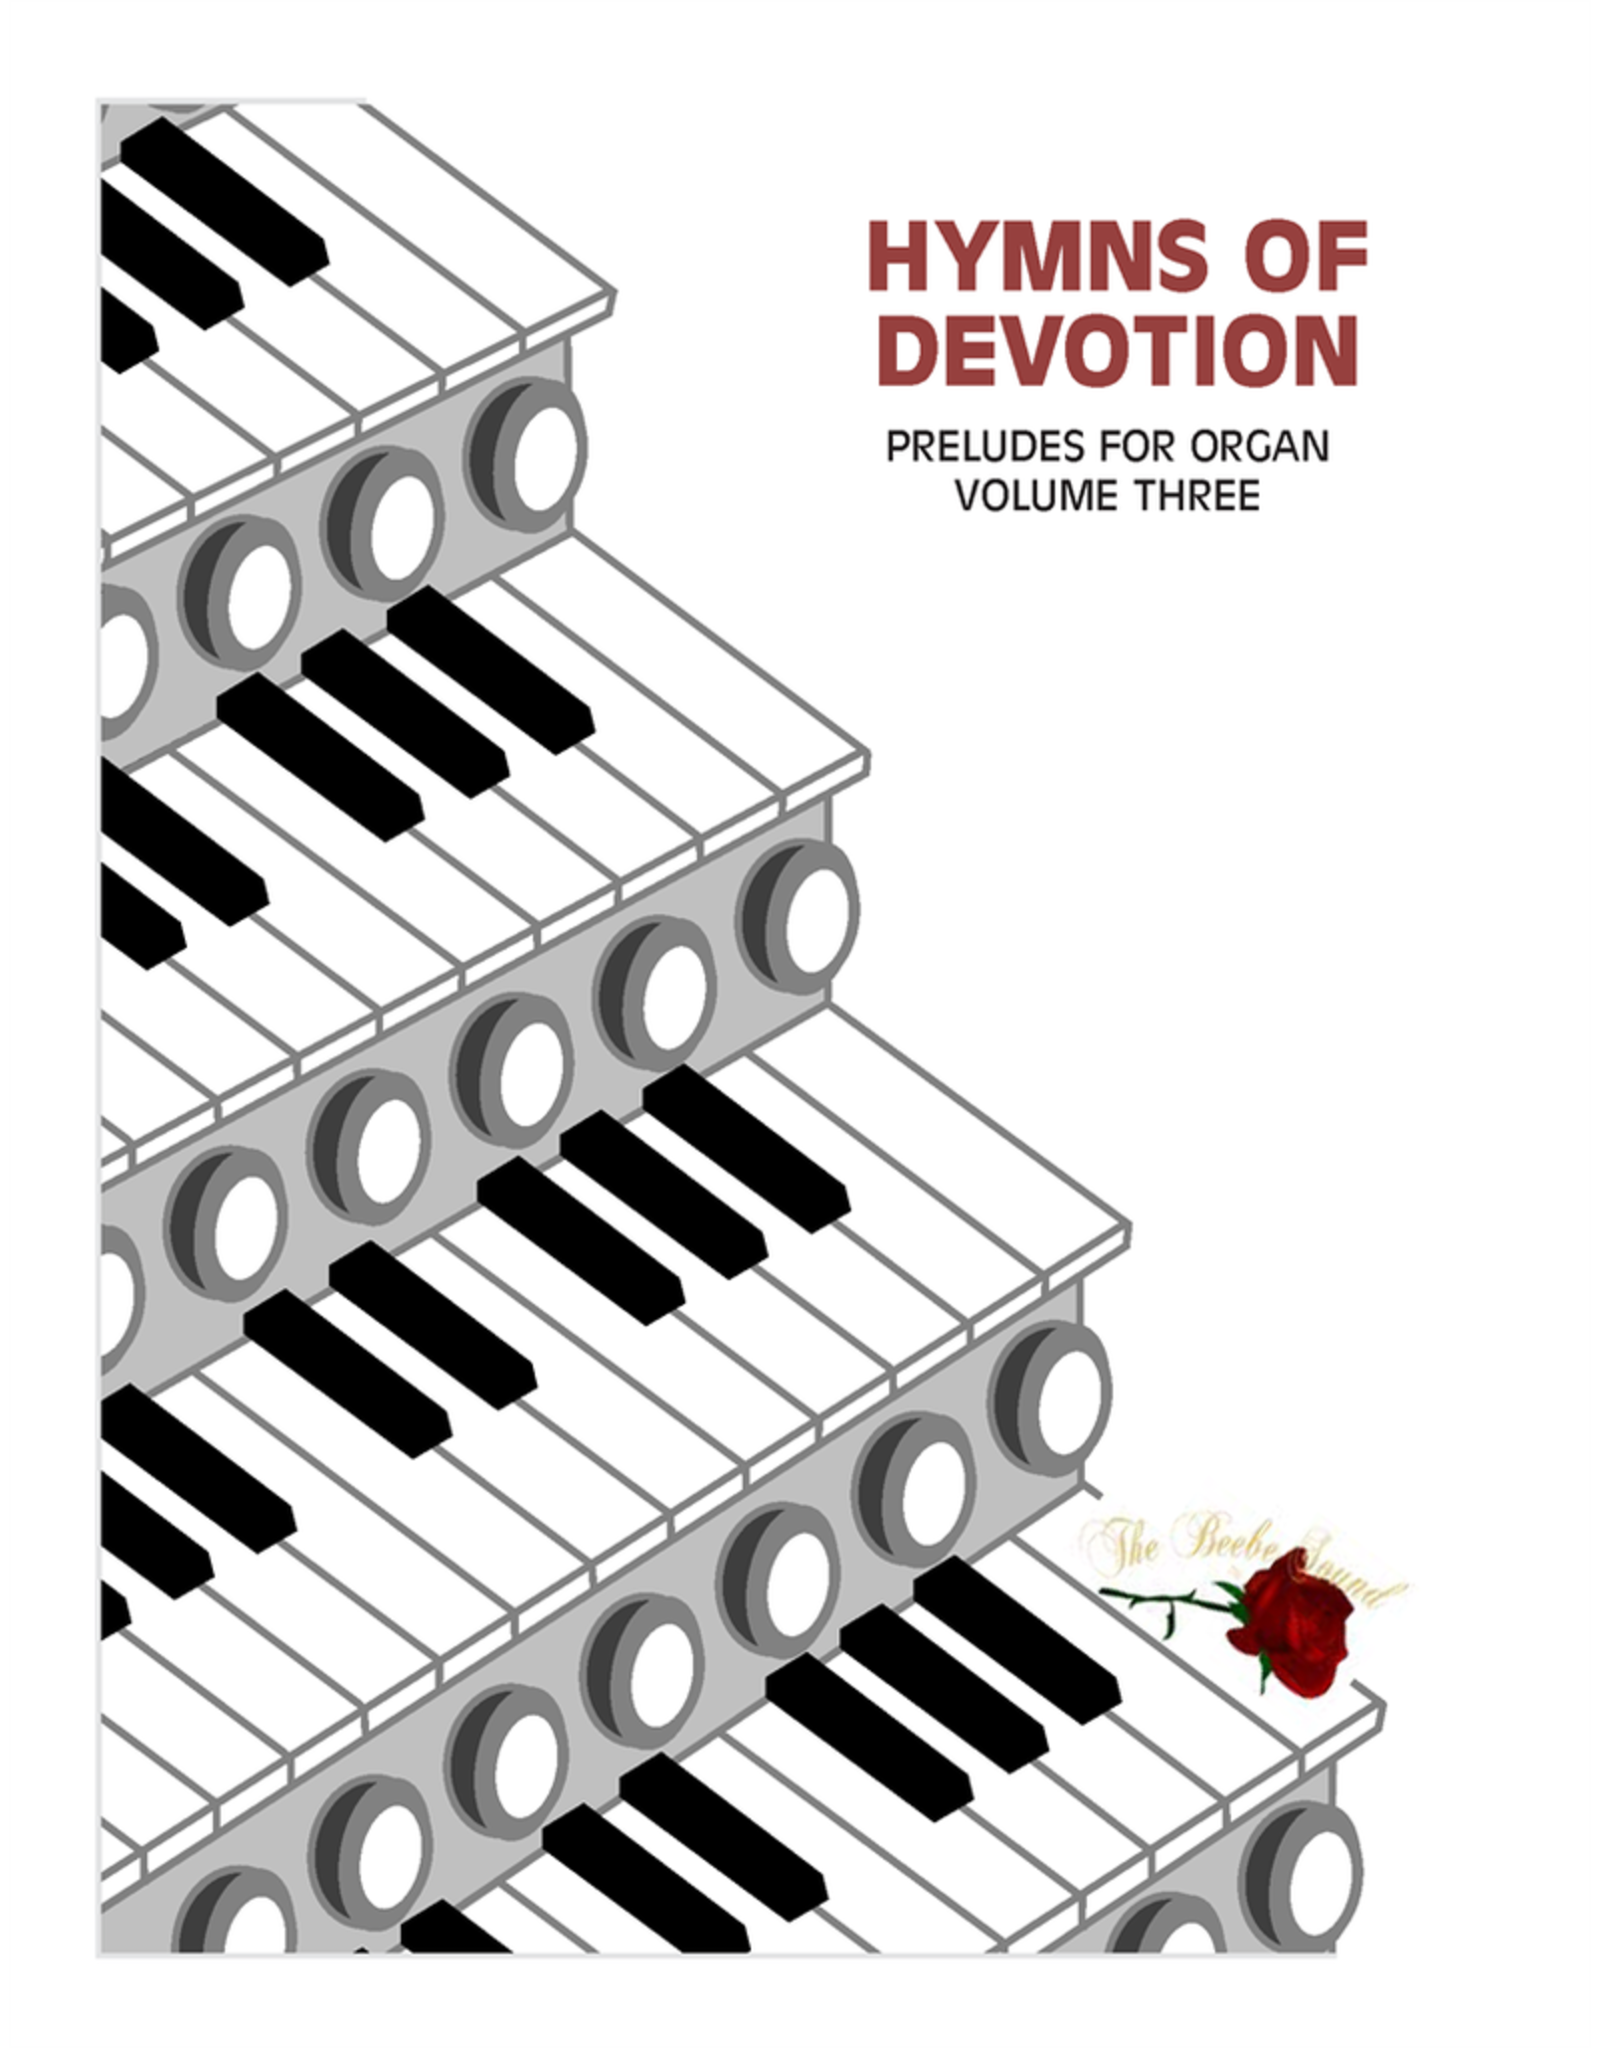 Larice Music Hymns of Devotion Preludes for Organ Vol. 3 arr. Larry Beebe